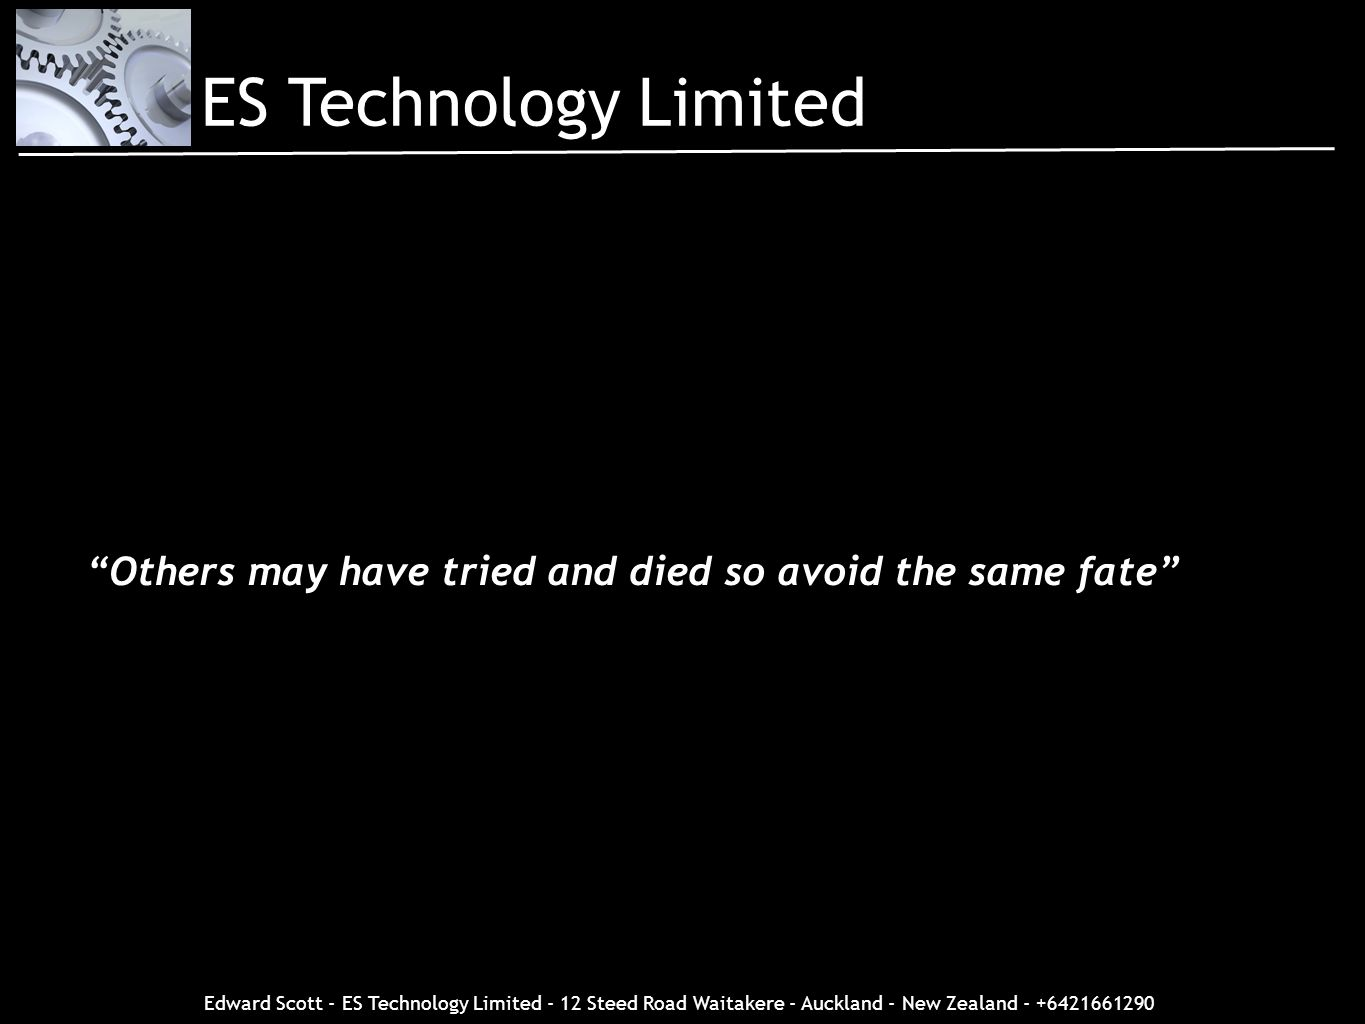 ES Technology Limited Remember to be weary, Others may have tried and died so avoid the same fate.